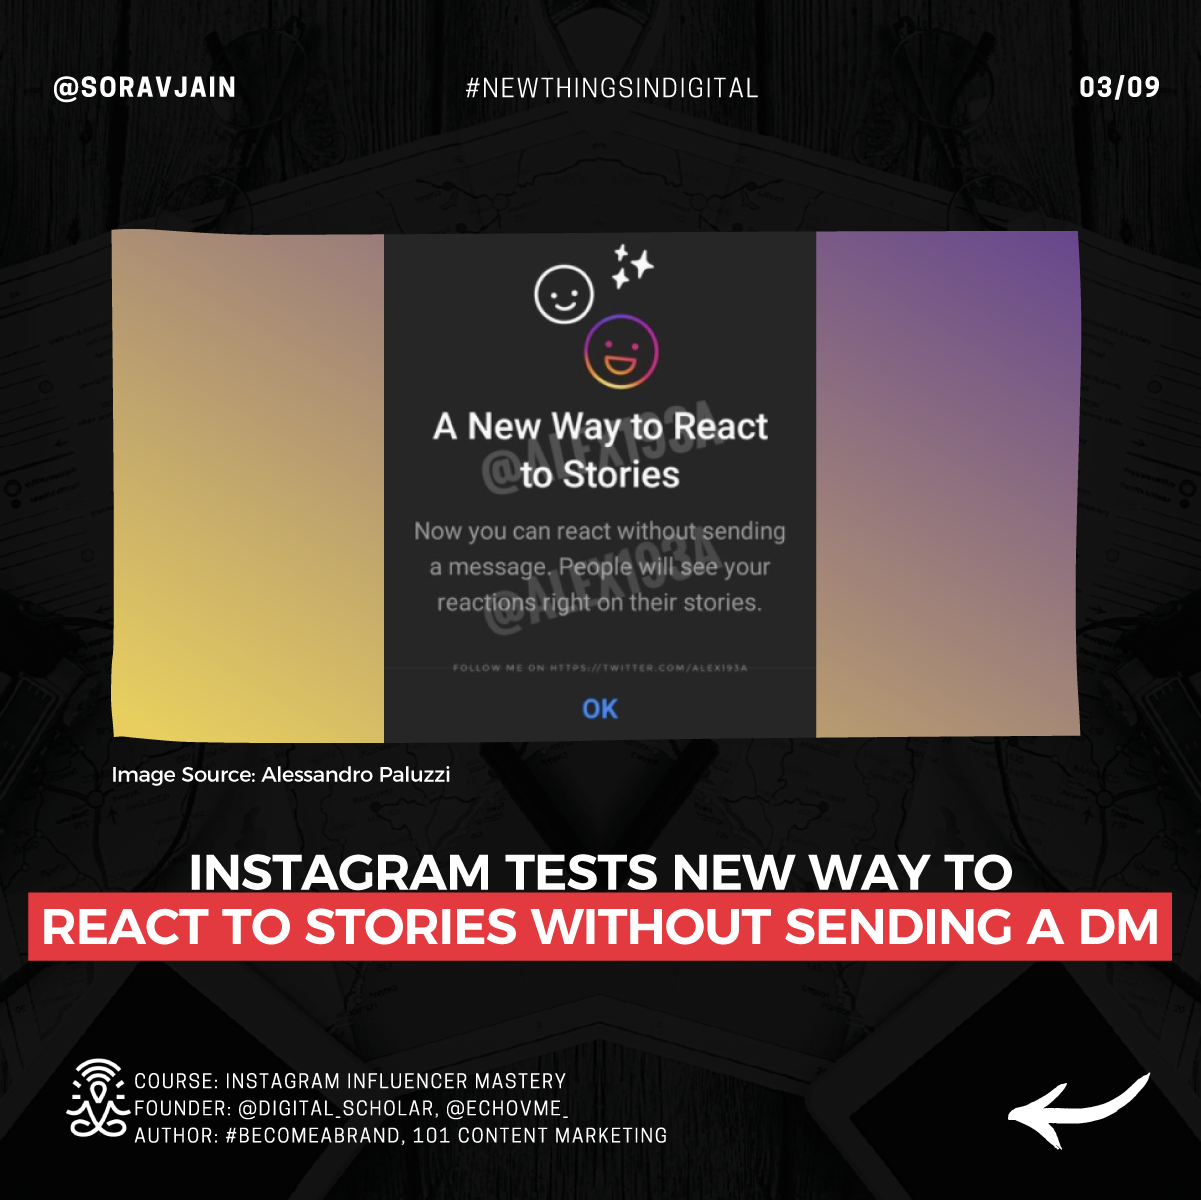 Instagram tests a new way to react to Stories without sending a DM